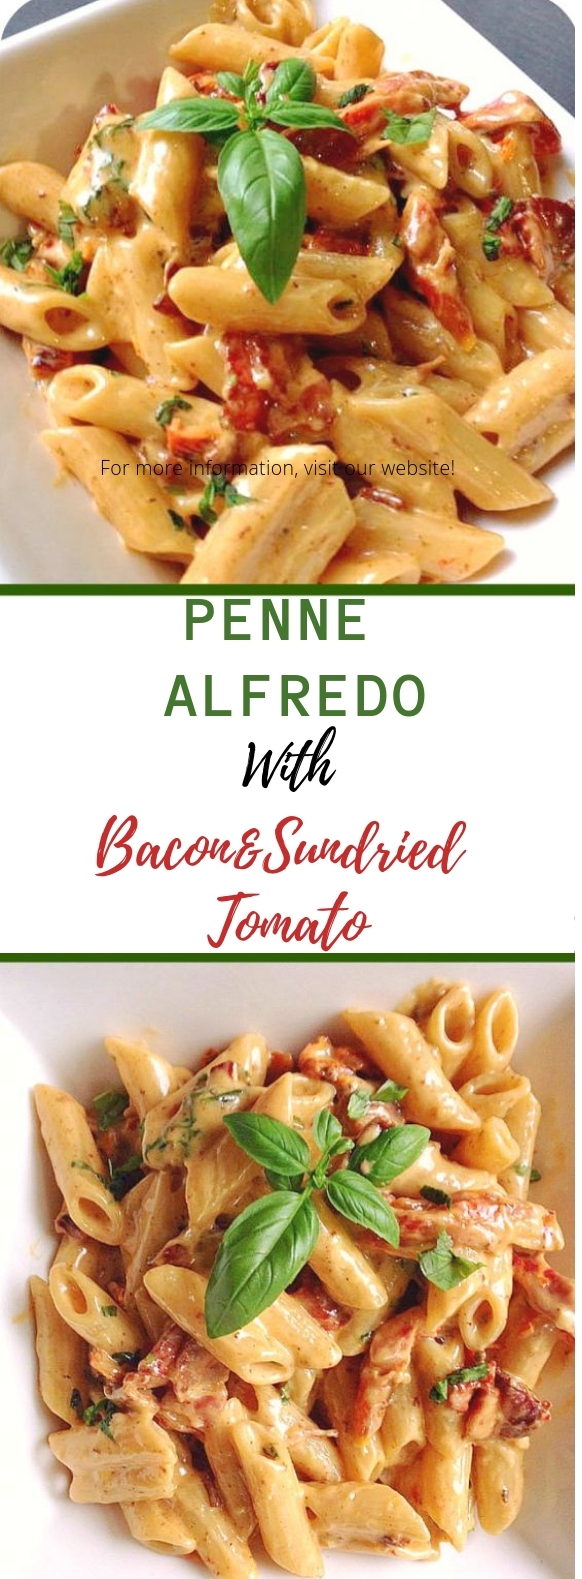 Penne Alfredo with Bacon and Sundried Tomato #pasta #dinner